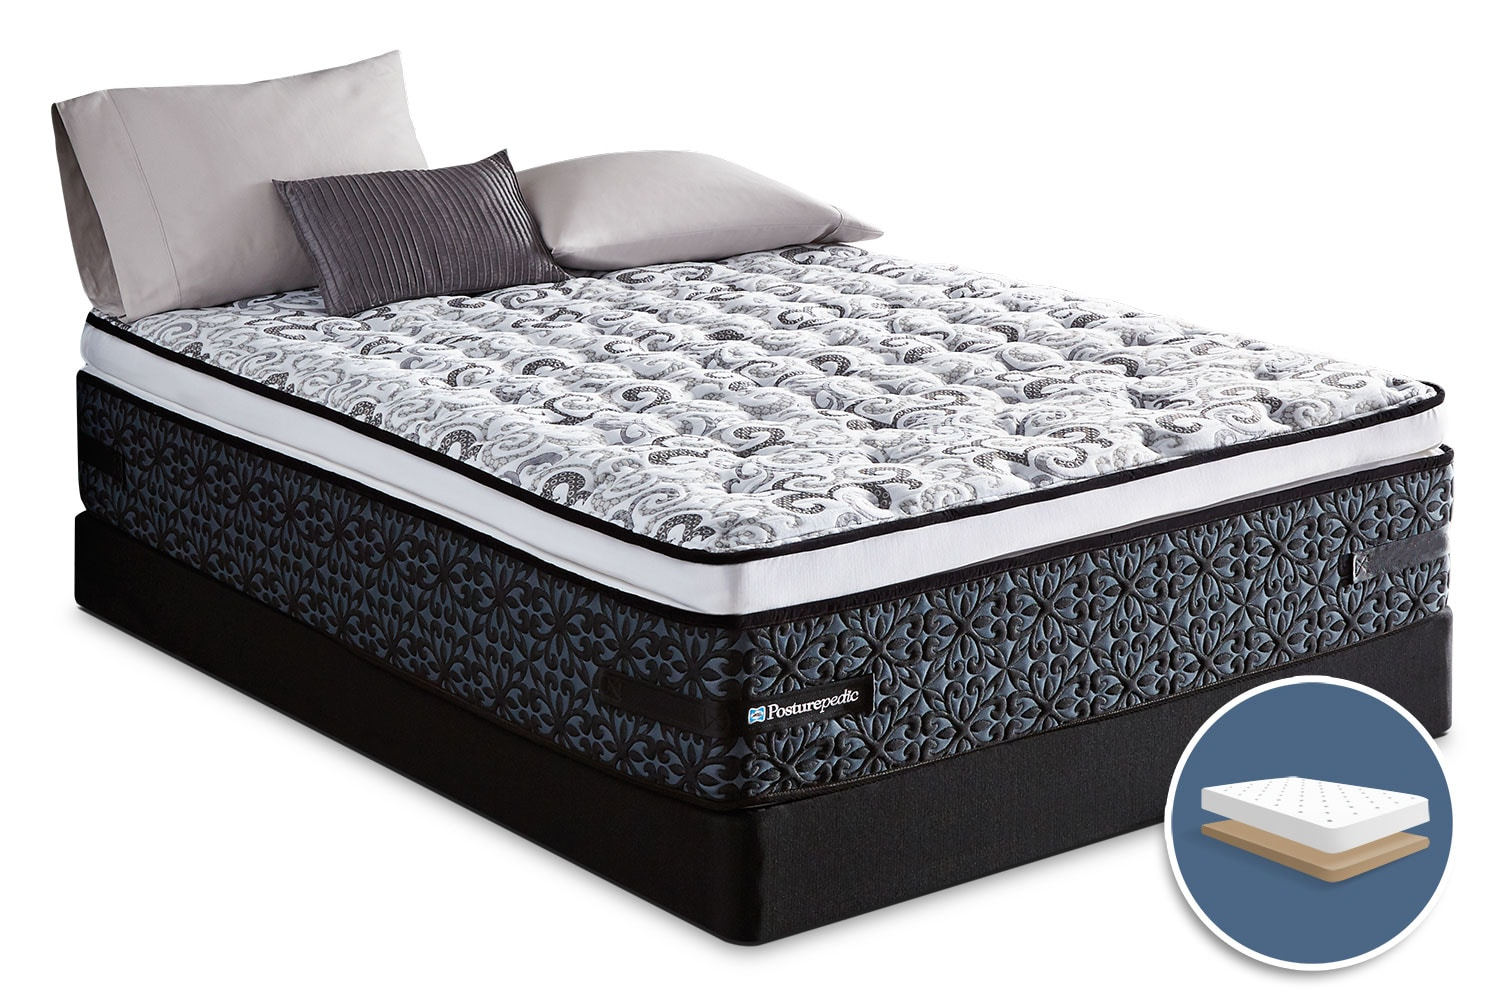 Sealy Crown Jewel Luxe Summer Crest Euro Pillow-Top Low-Profile Full Mattress Set